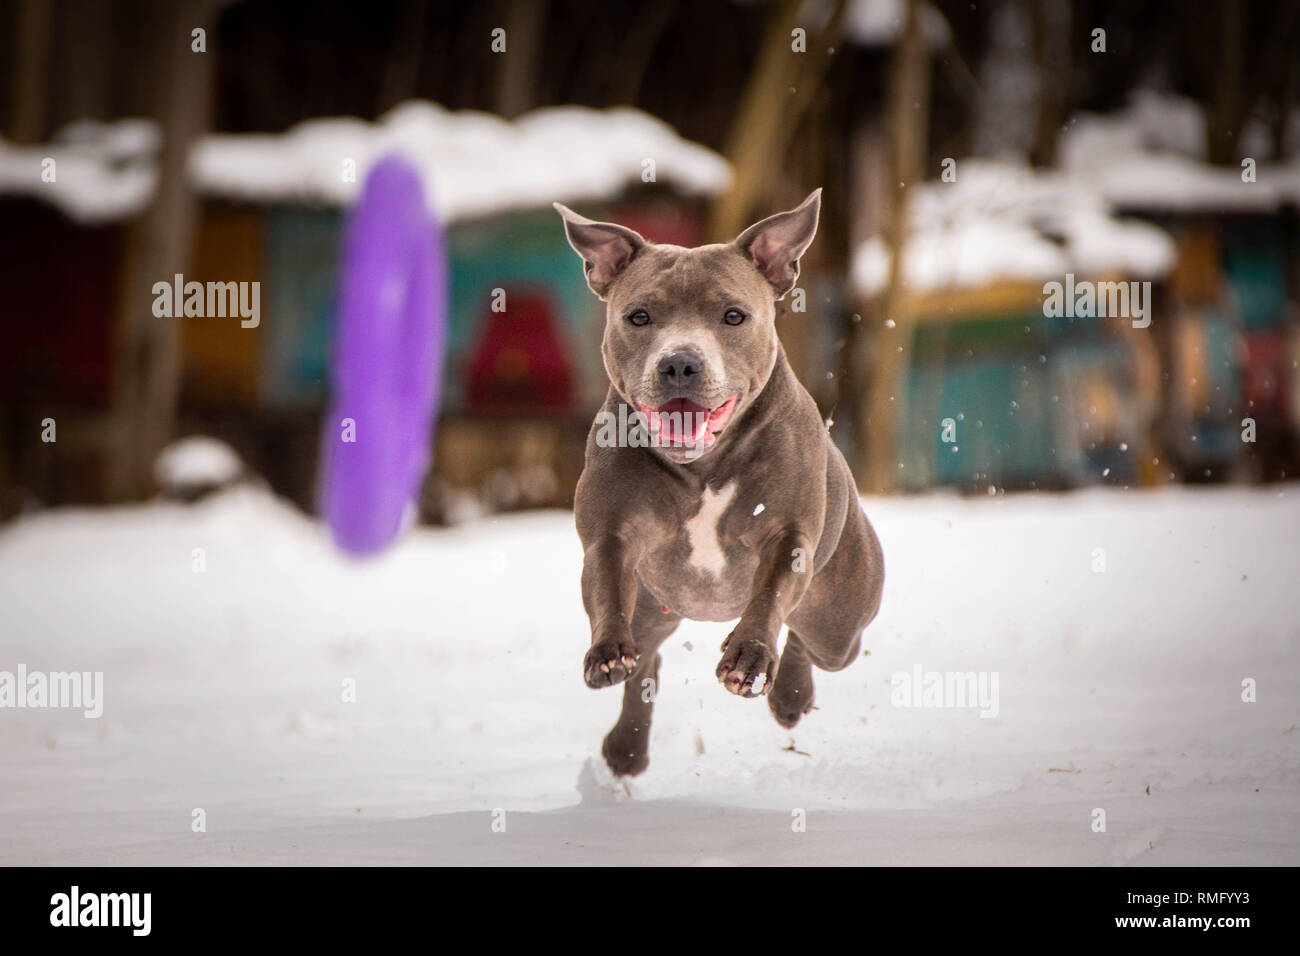 staffordshire bull terrier running for dog puller - Stock Image